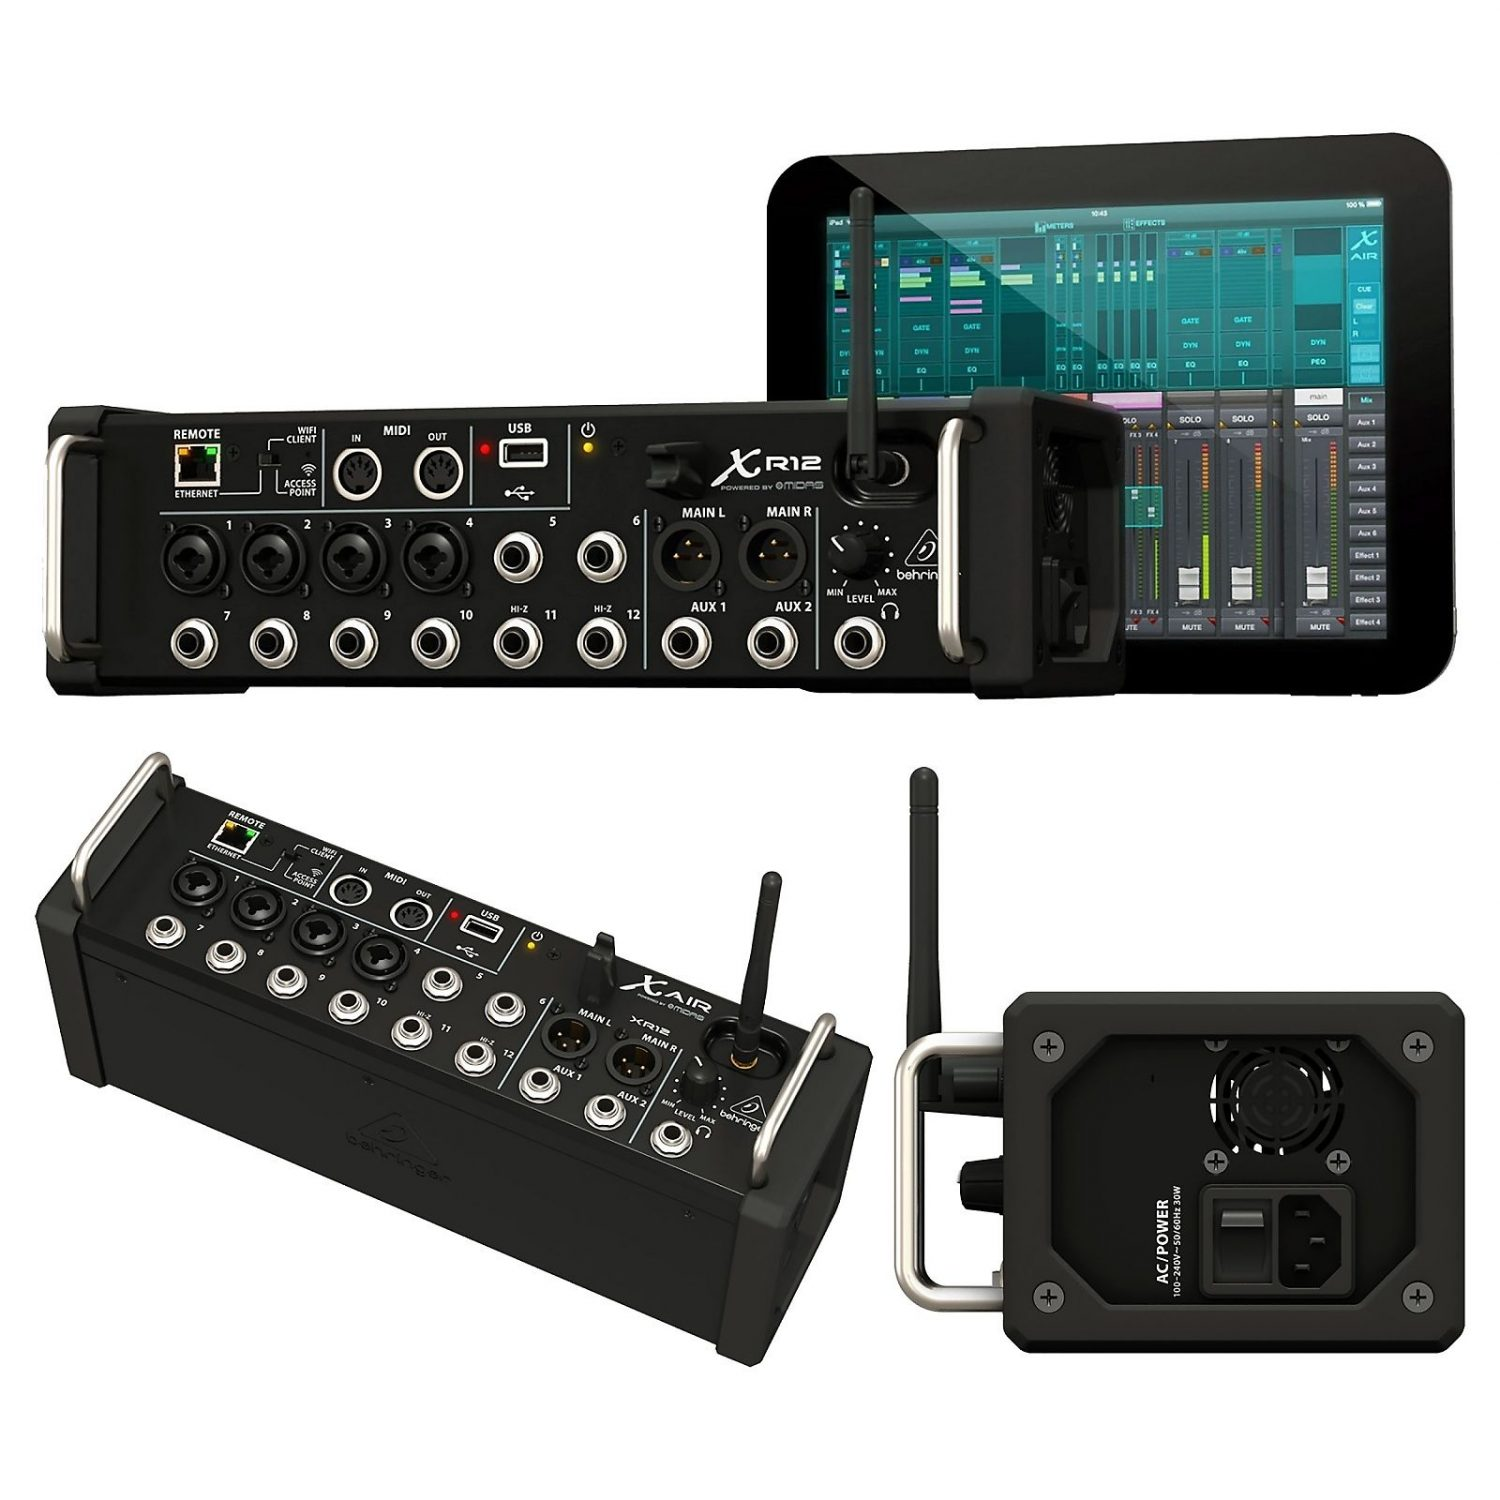 behringer x air xr12 12 input digital mixer for ipad android free shipping. Black Bedroom Furniture Sets. Home Design Ideas